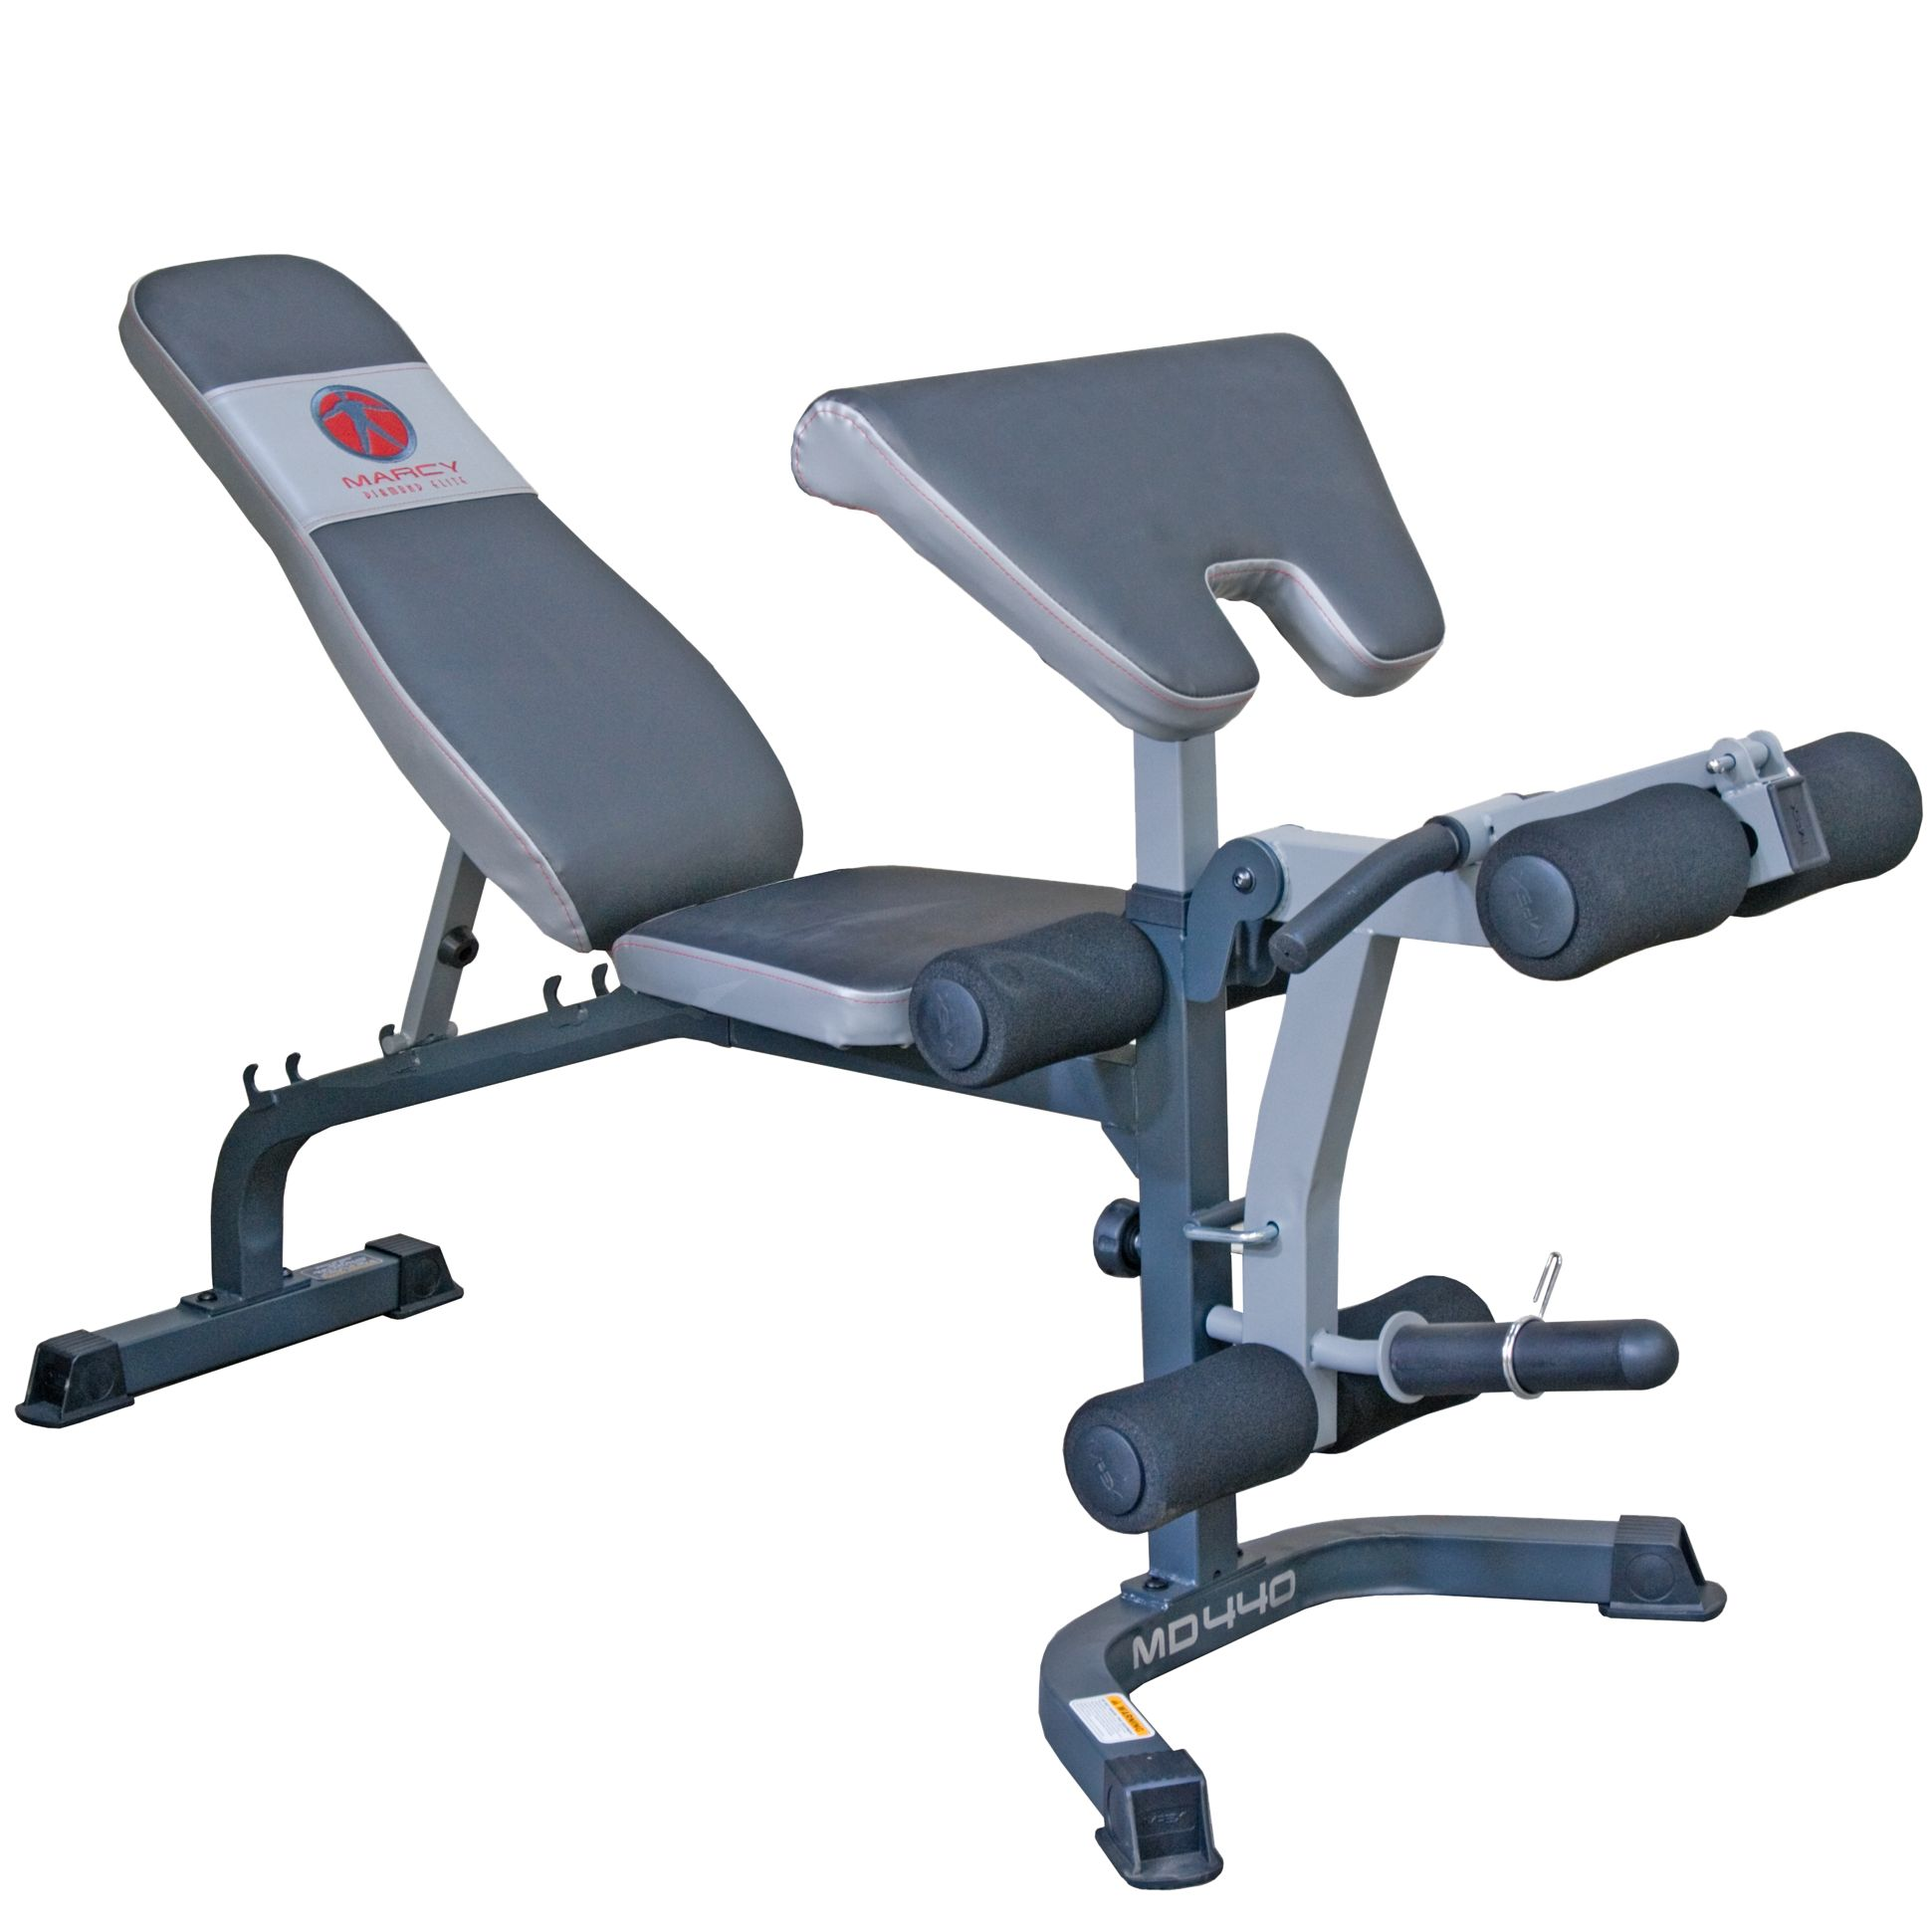 Marcy MD440 Utility Bench at John Lewis